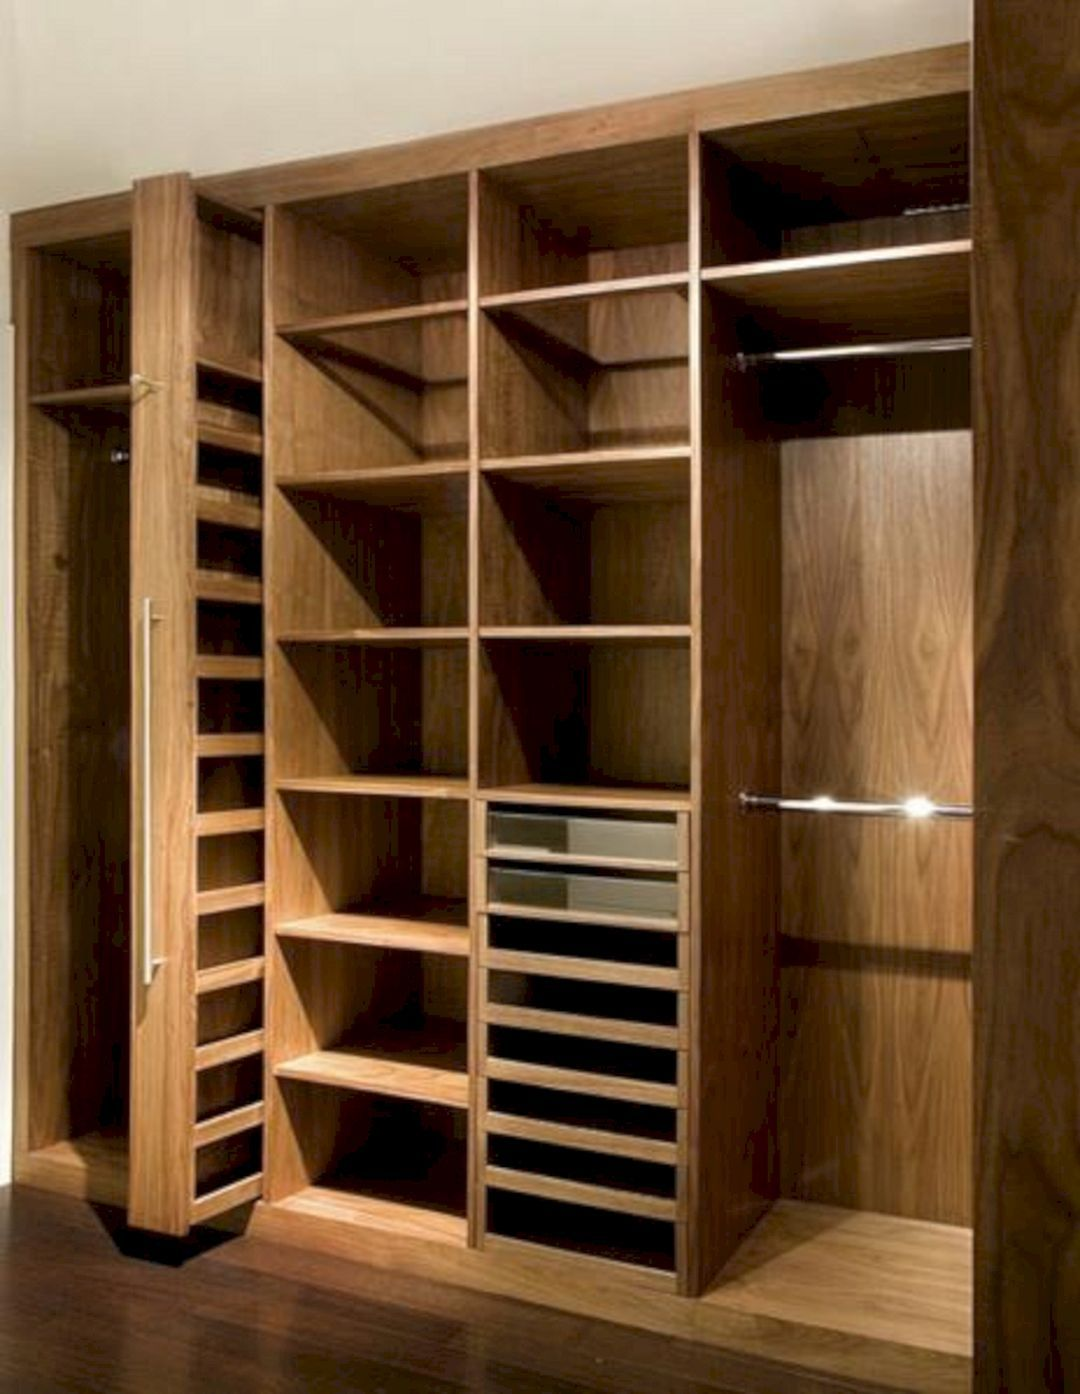 10 Best Man Closet Design Ideas To Easily Organize